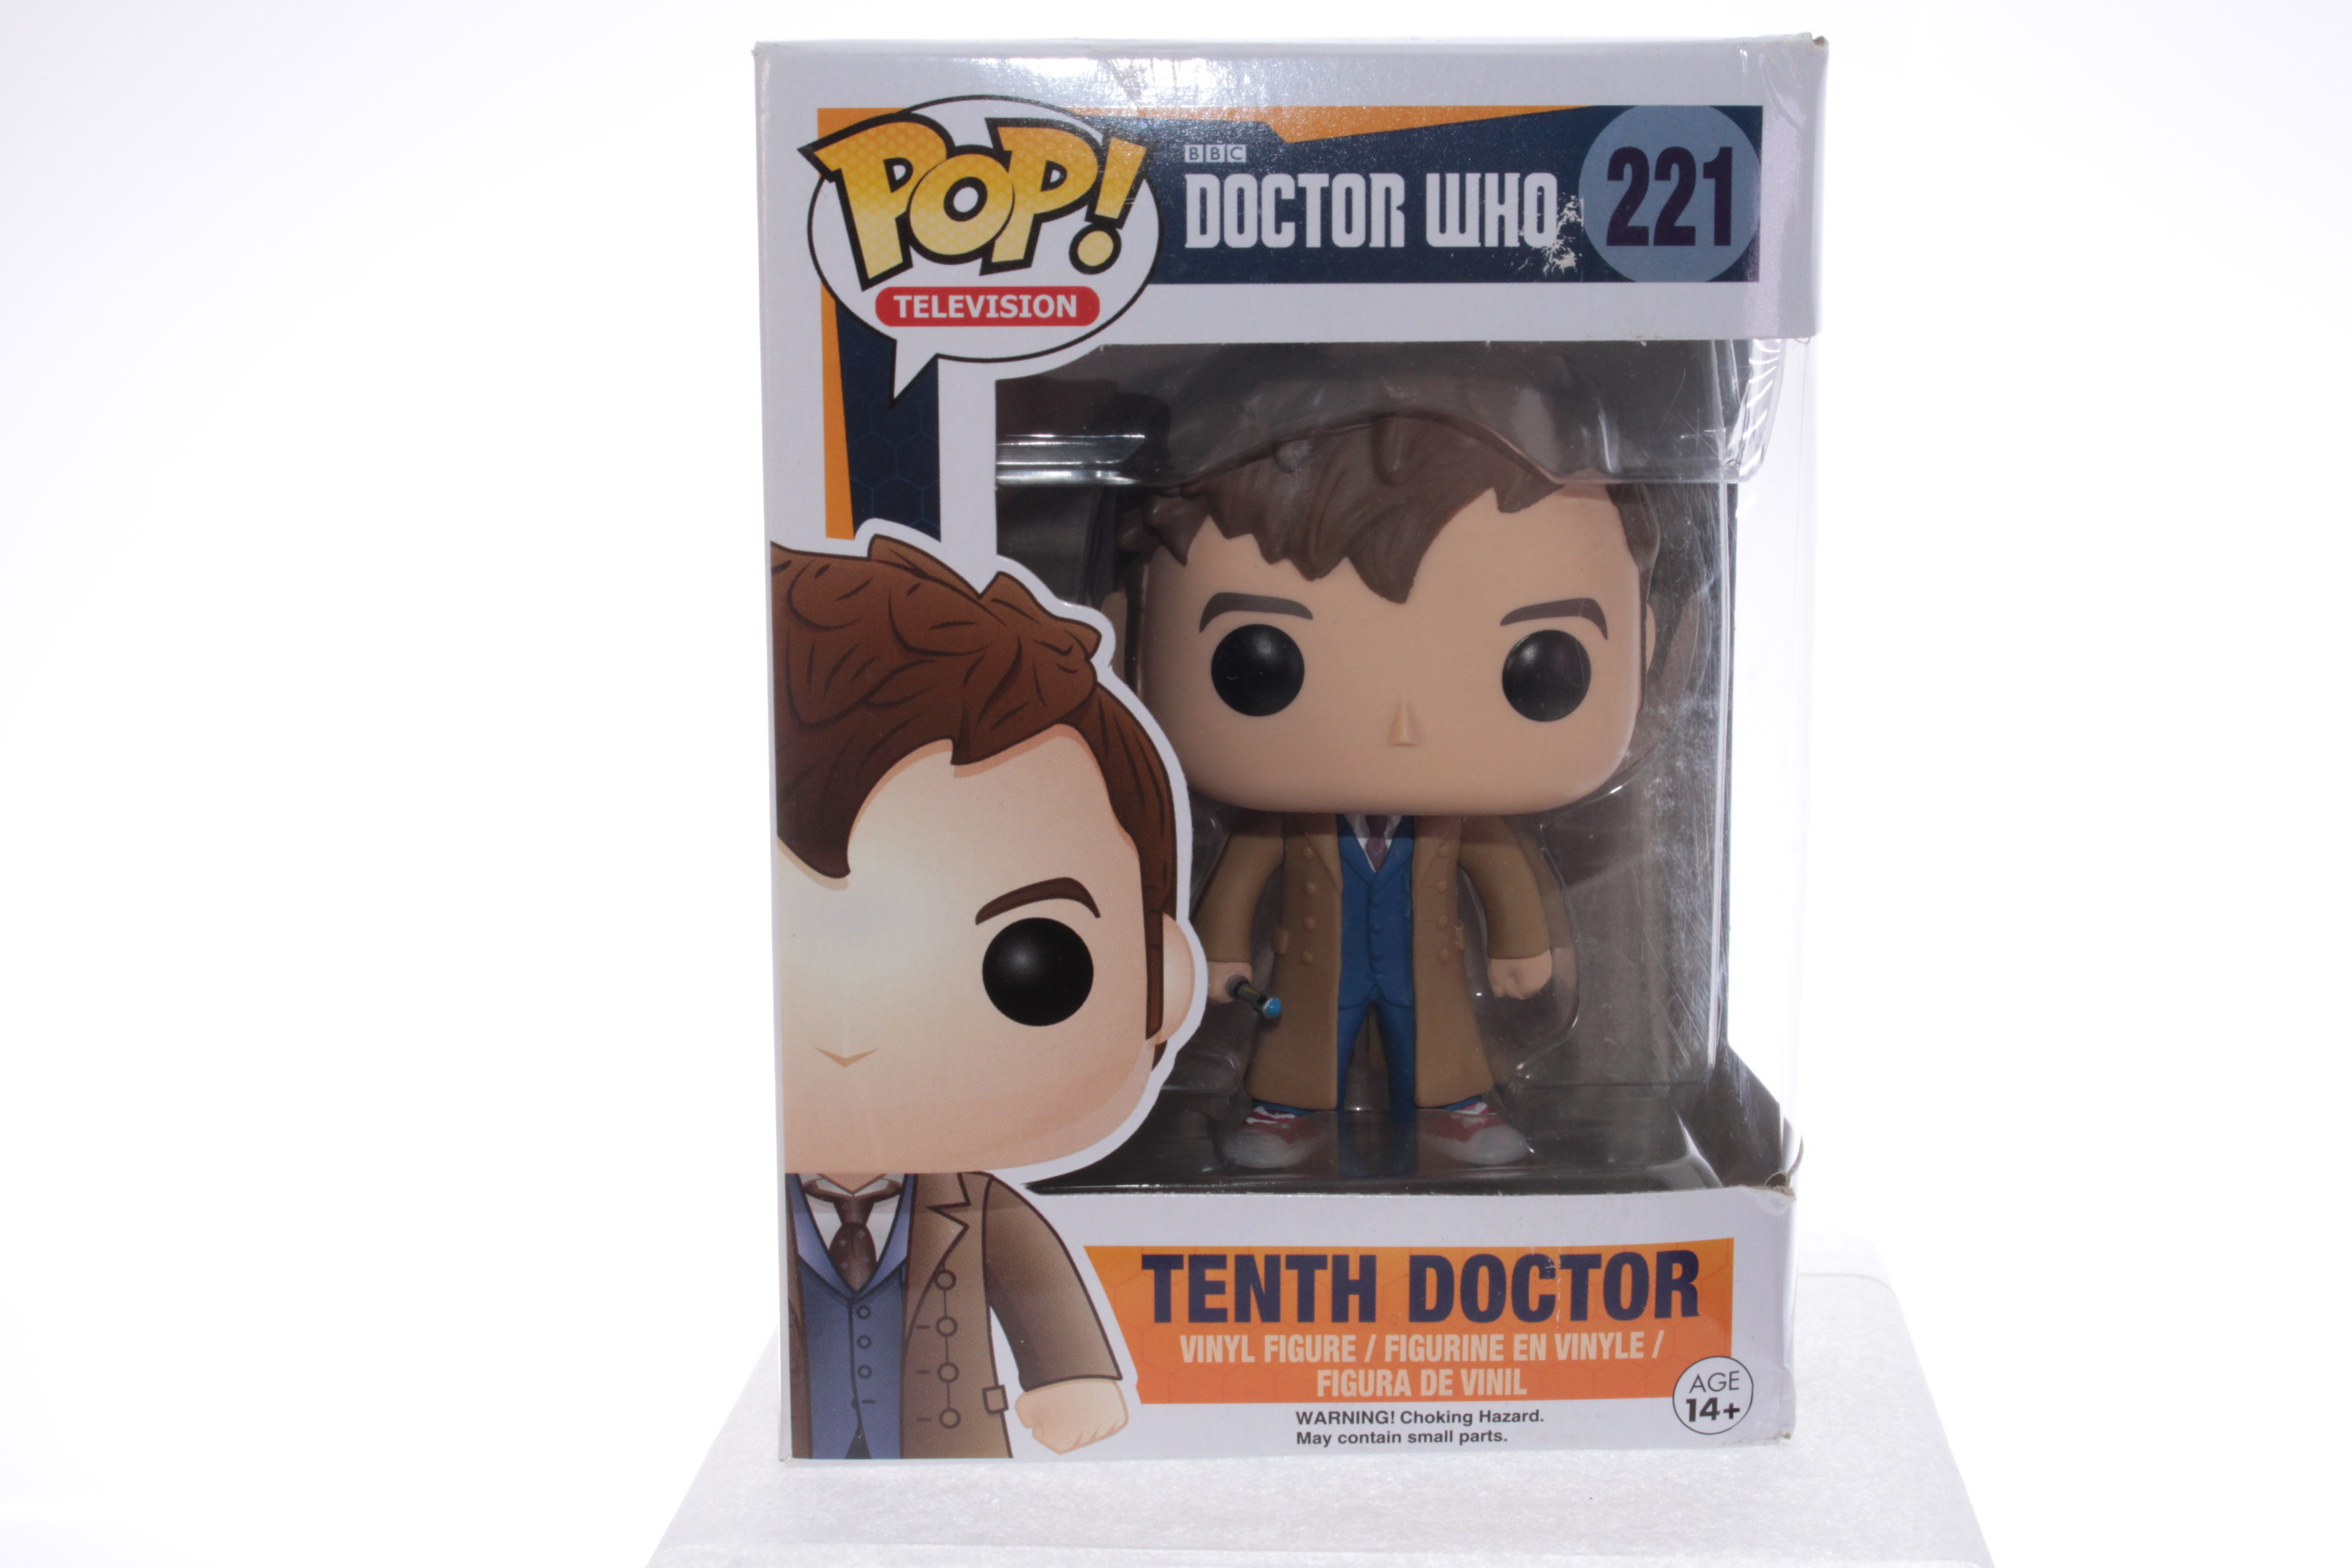 RARE FUNKO POP #234 DOCTOR WHO TENTH DOCTOR NEW YORK COMIC CON LIMITED EDITION